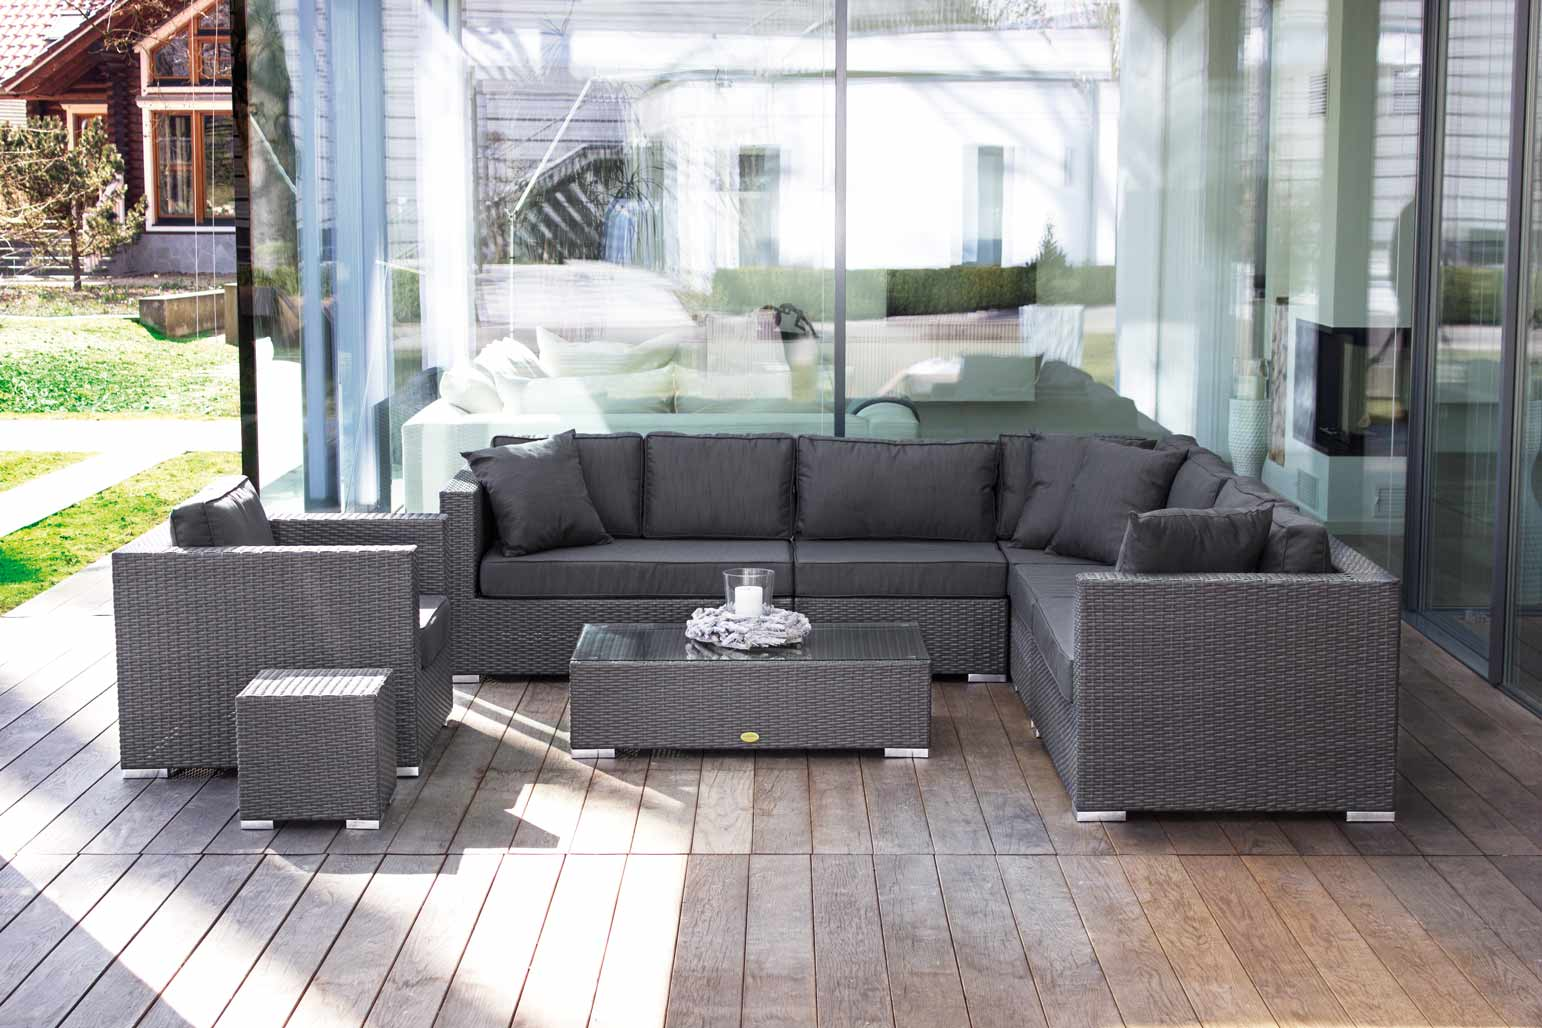 Edle polyrattan loungem bel vom hersteller too design for Lounge set rattan gunstig